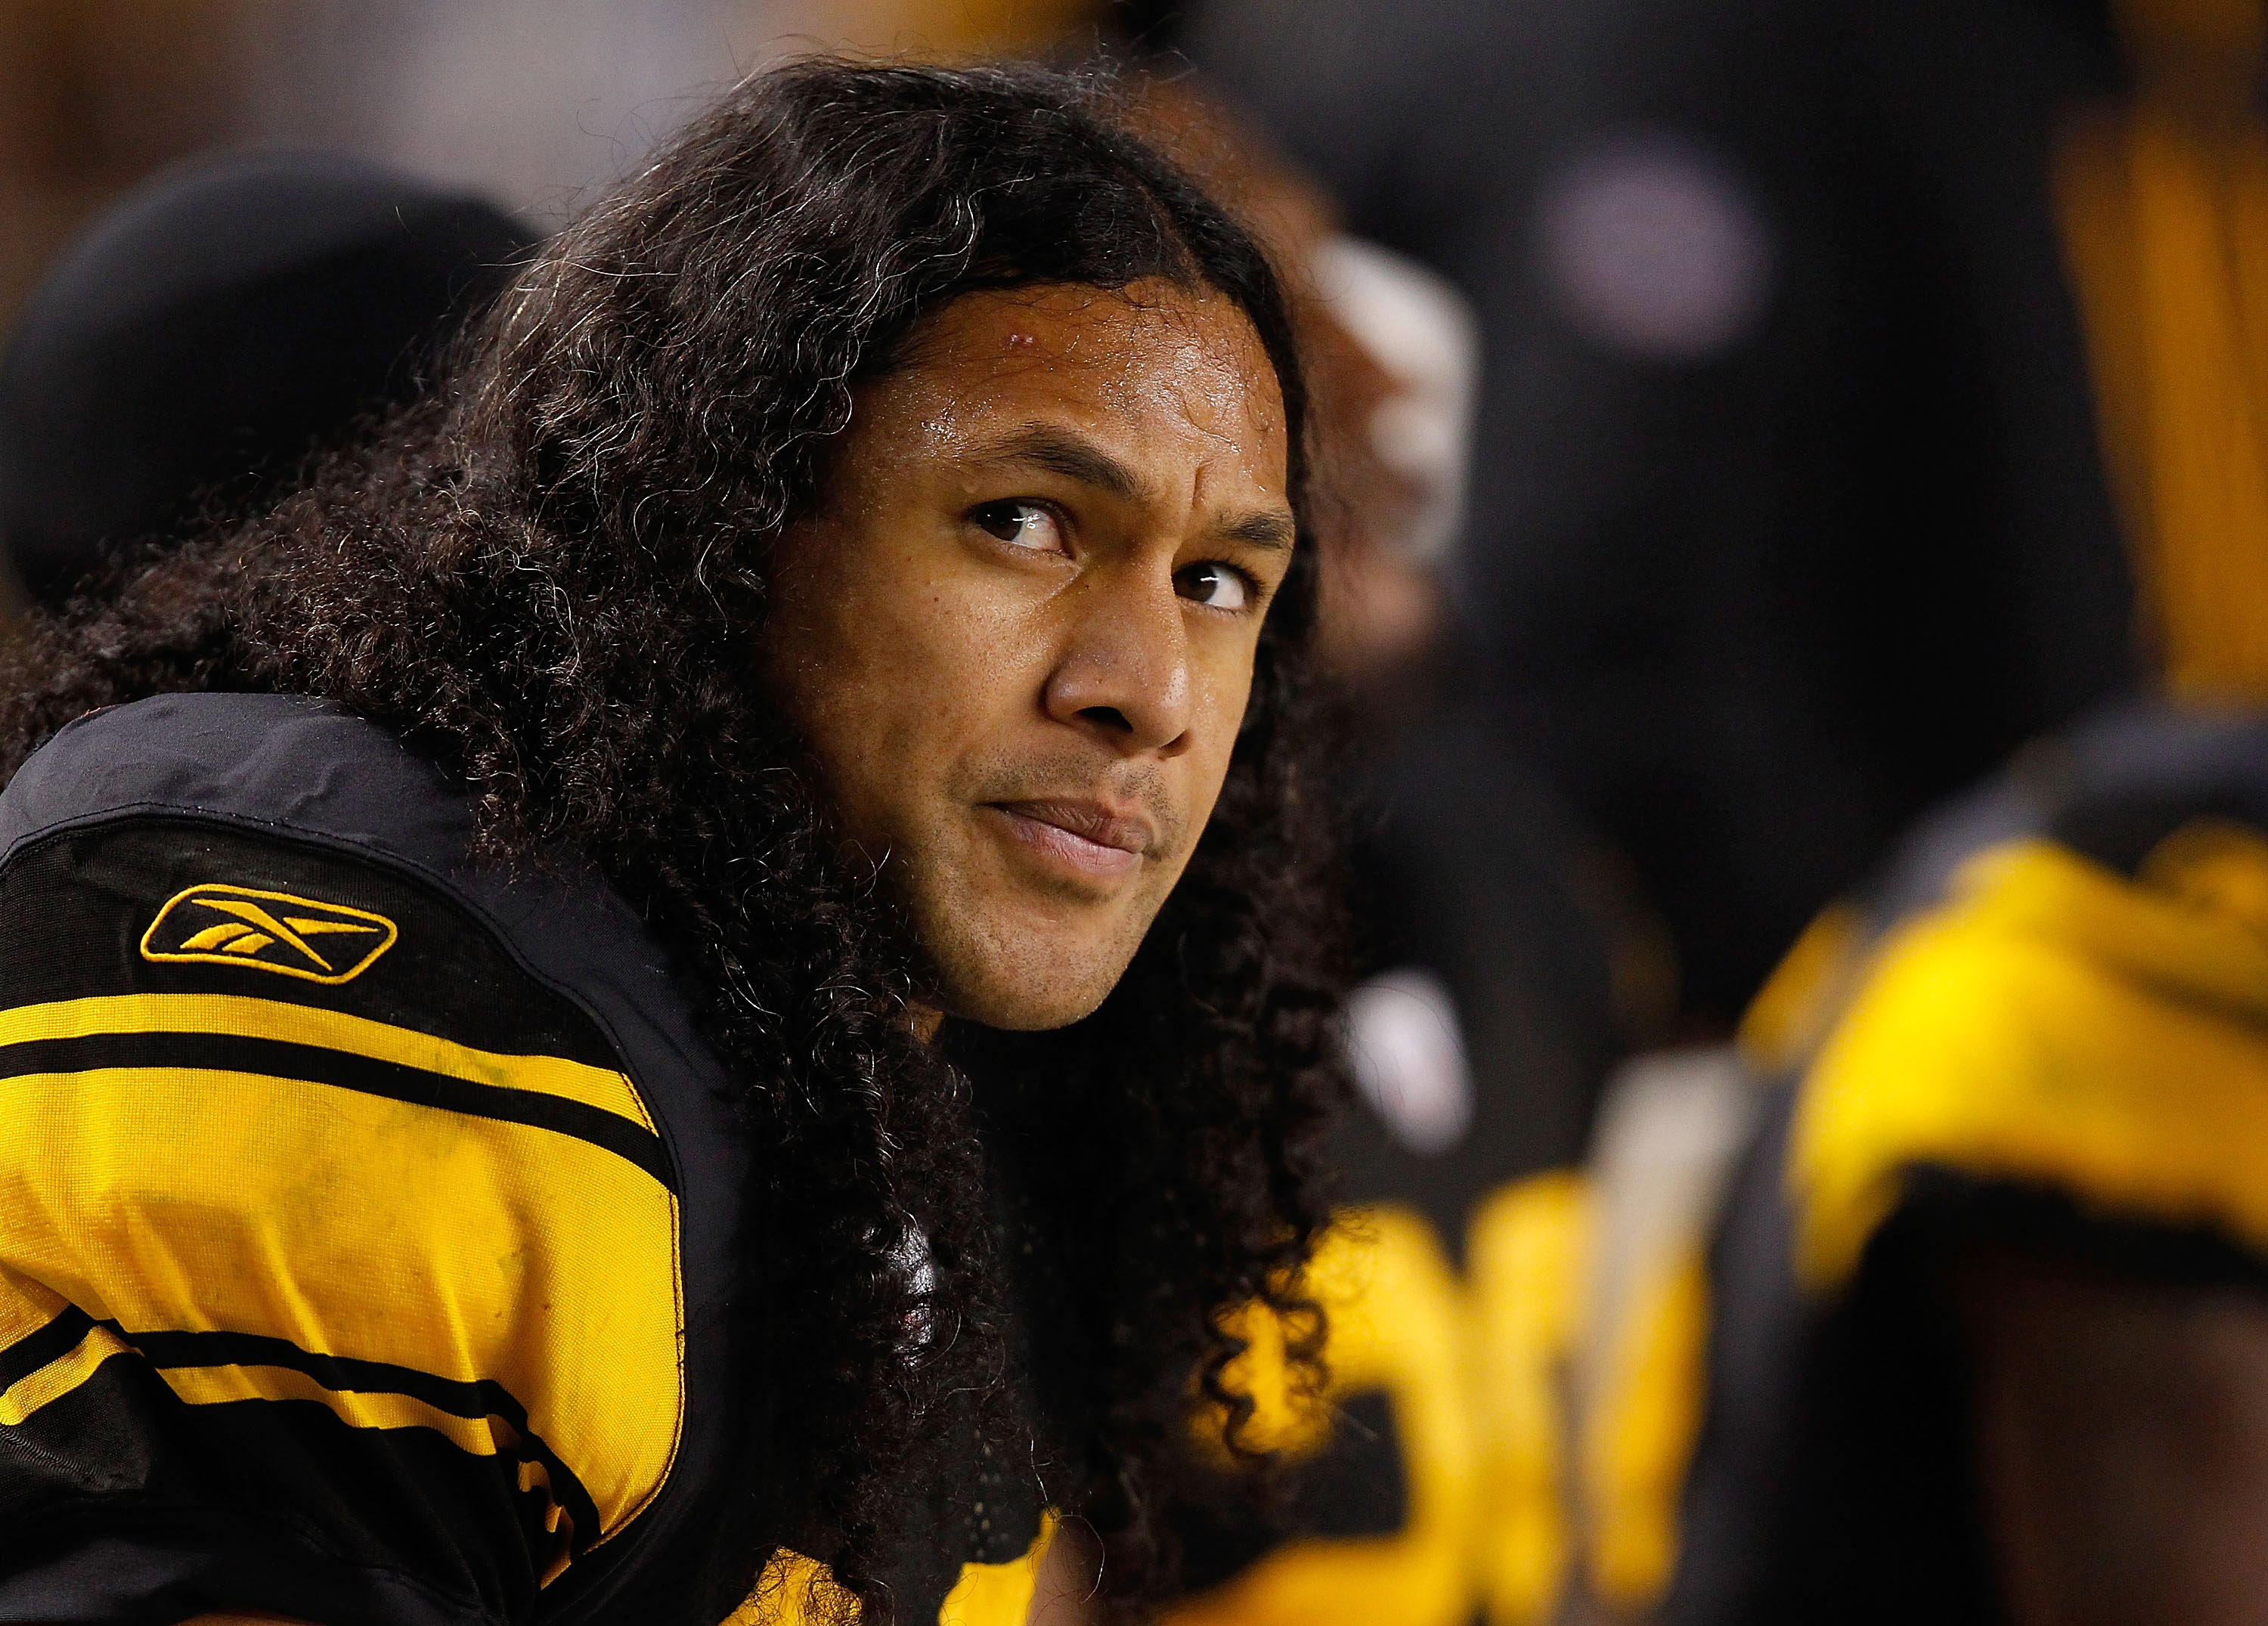 PITTSBURGH - NOVEMBER 14:  Troy Polamalu #43 of the Pittsburgh Steelers watches the game against the New England Patriots from the bench during the game on November 14, 2010 at Heinz Field in Pittsburgh, Pennsylvania.  (Photo by Jared Wickerham/Getty Imag